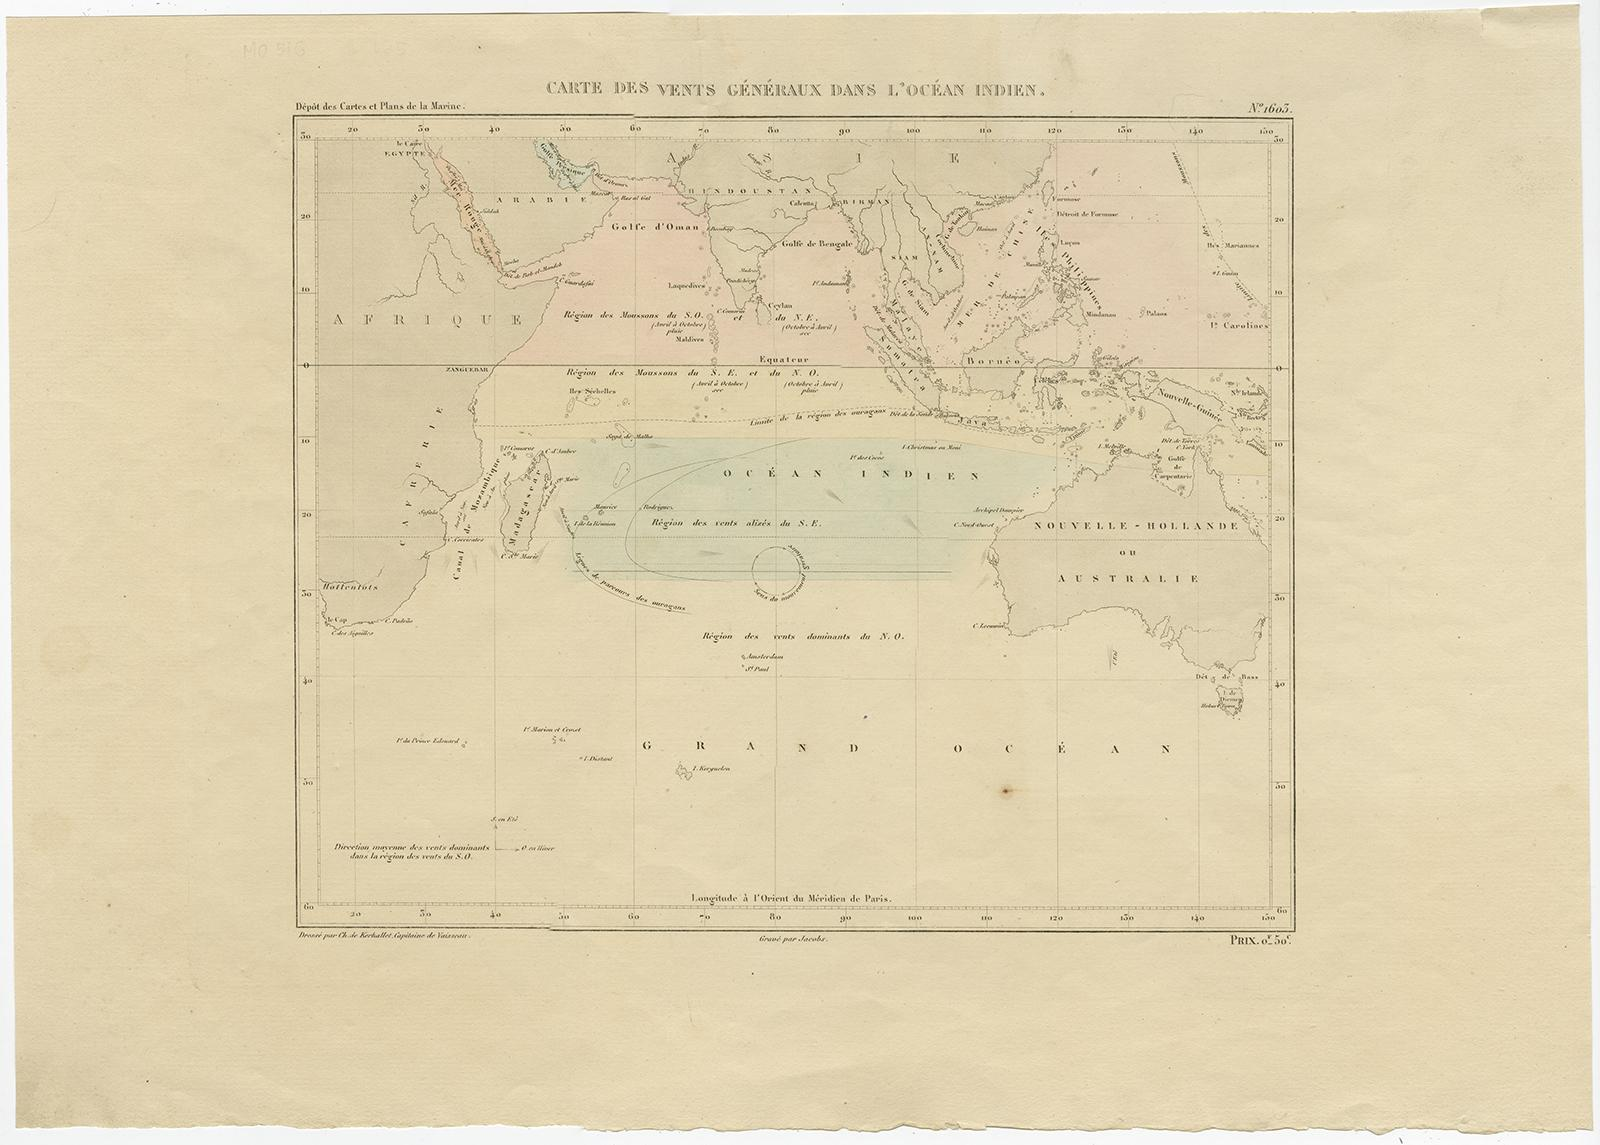 Carte Australie Cp.Antique Map Of The Indian Ocean C 1855